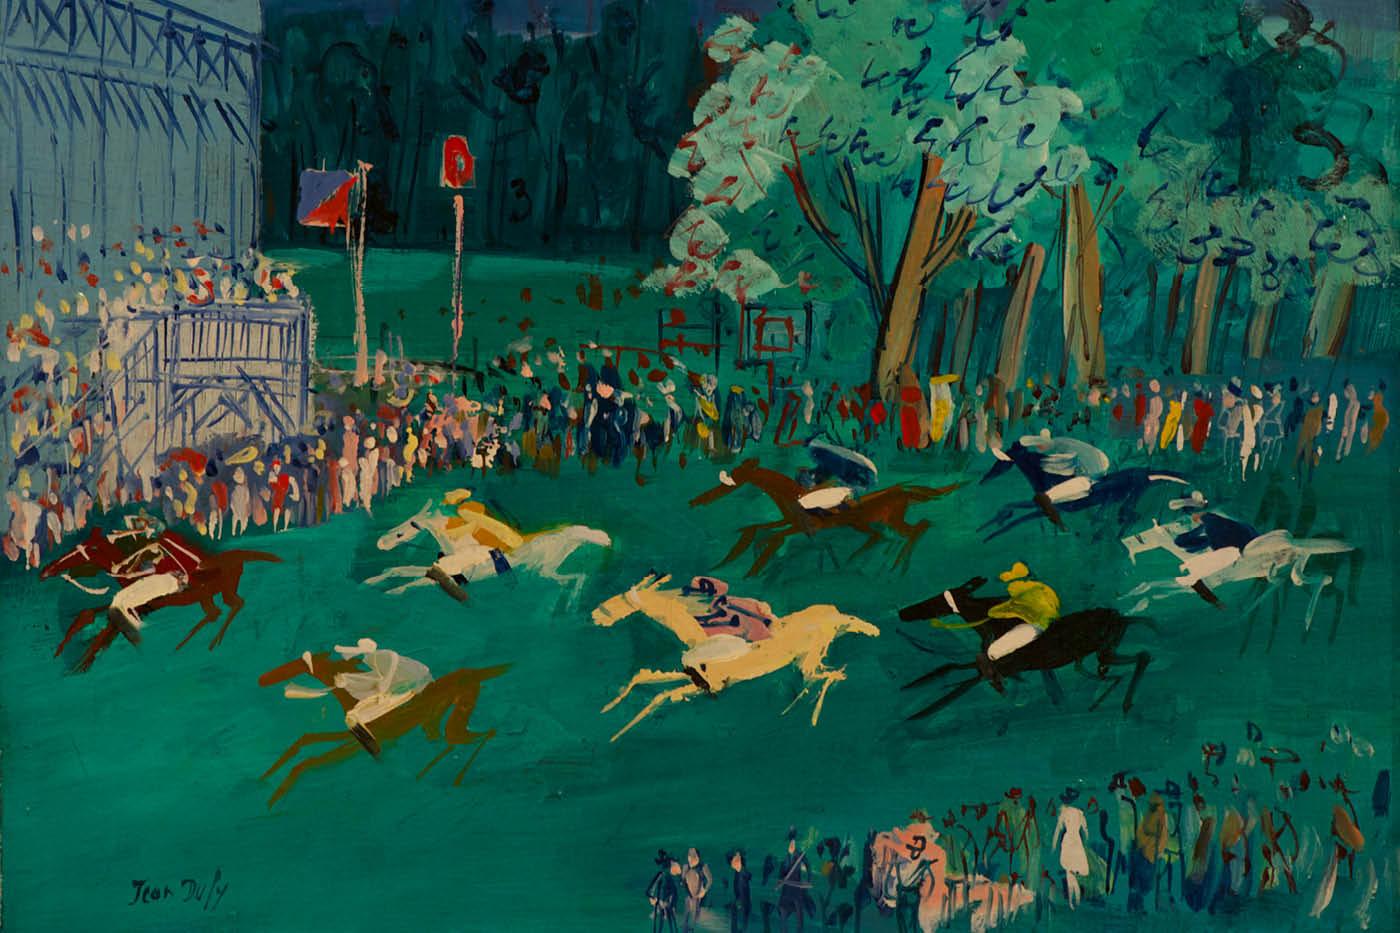 JEAN DUFY | French, 1888 - 1964 | At the Races (detail), 1957 - 1958 | Oil on canvas | Gift of Mrs. Rose A. Guy in honor of William & Mary President Thomas A. Graves, Jr. | 1984.027